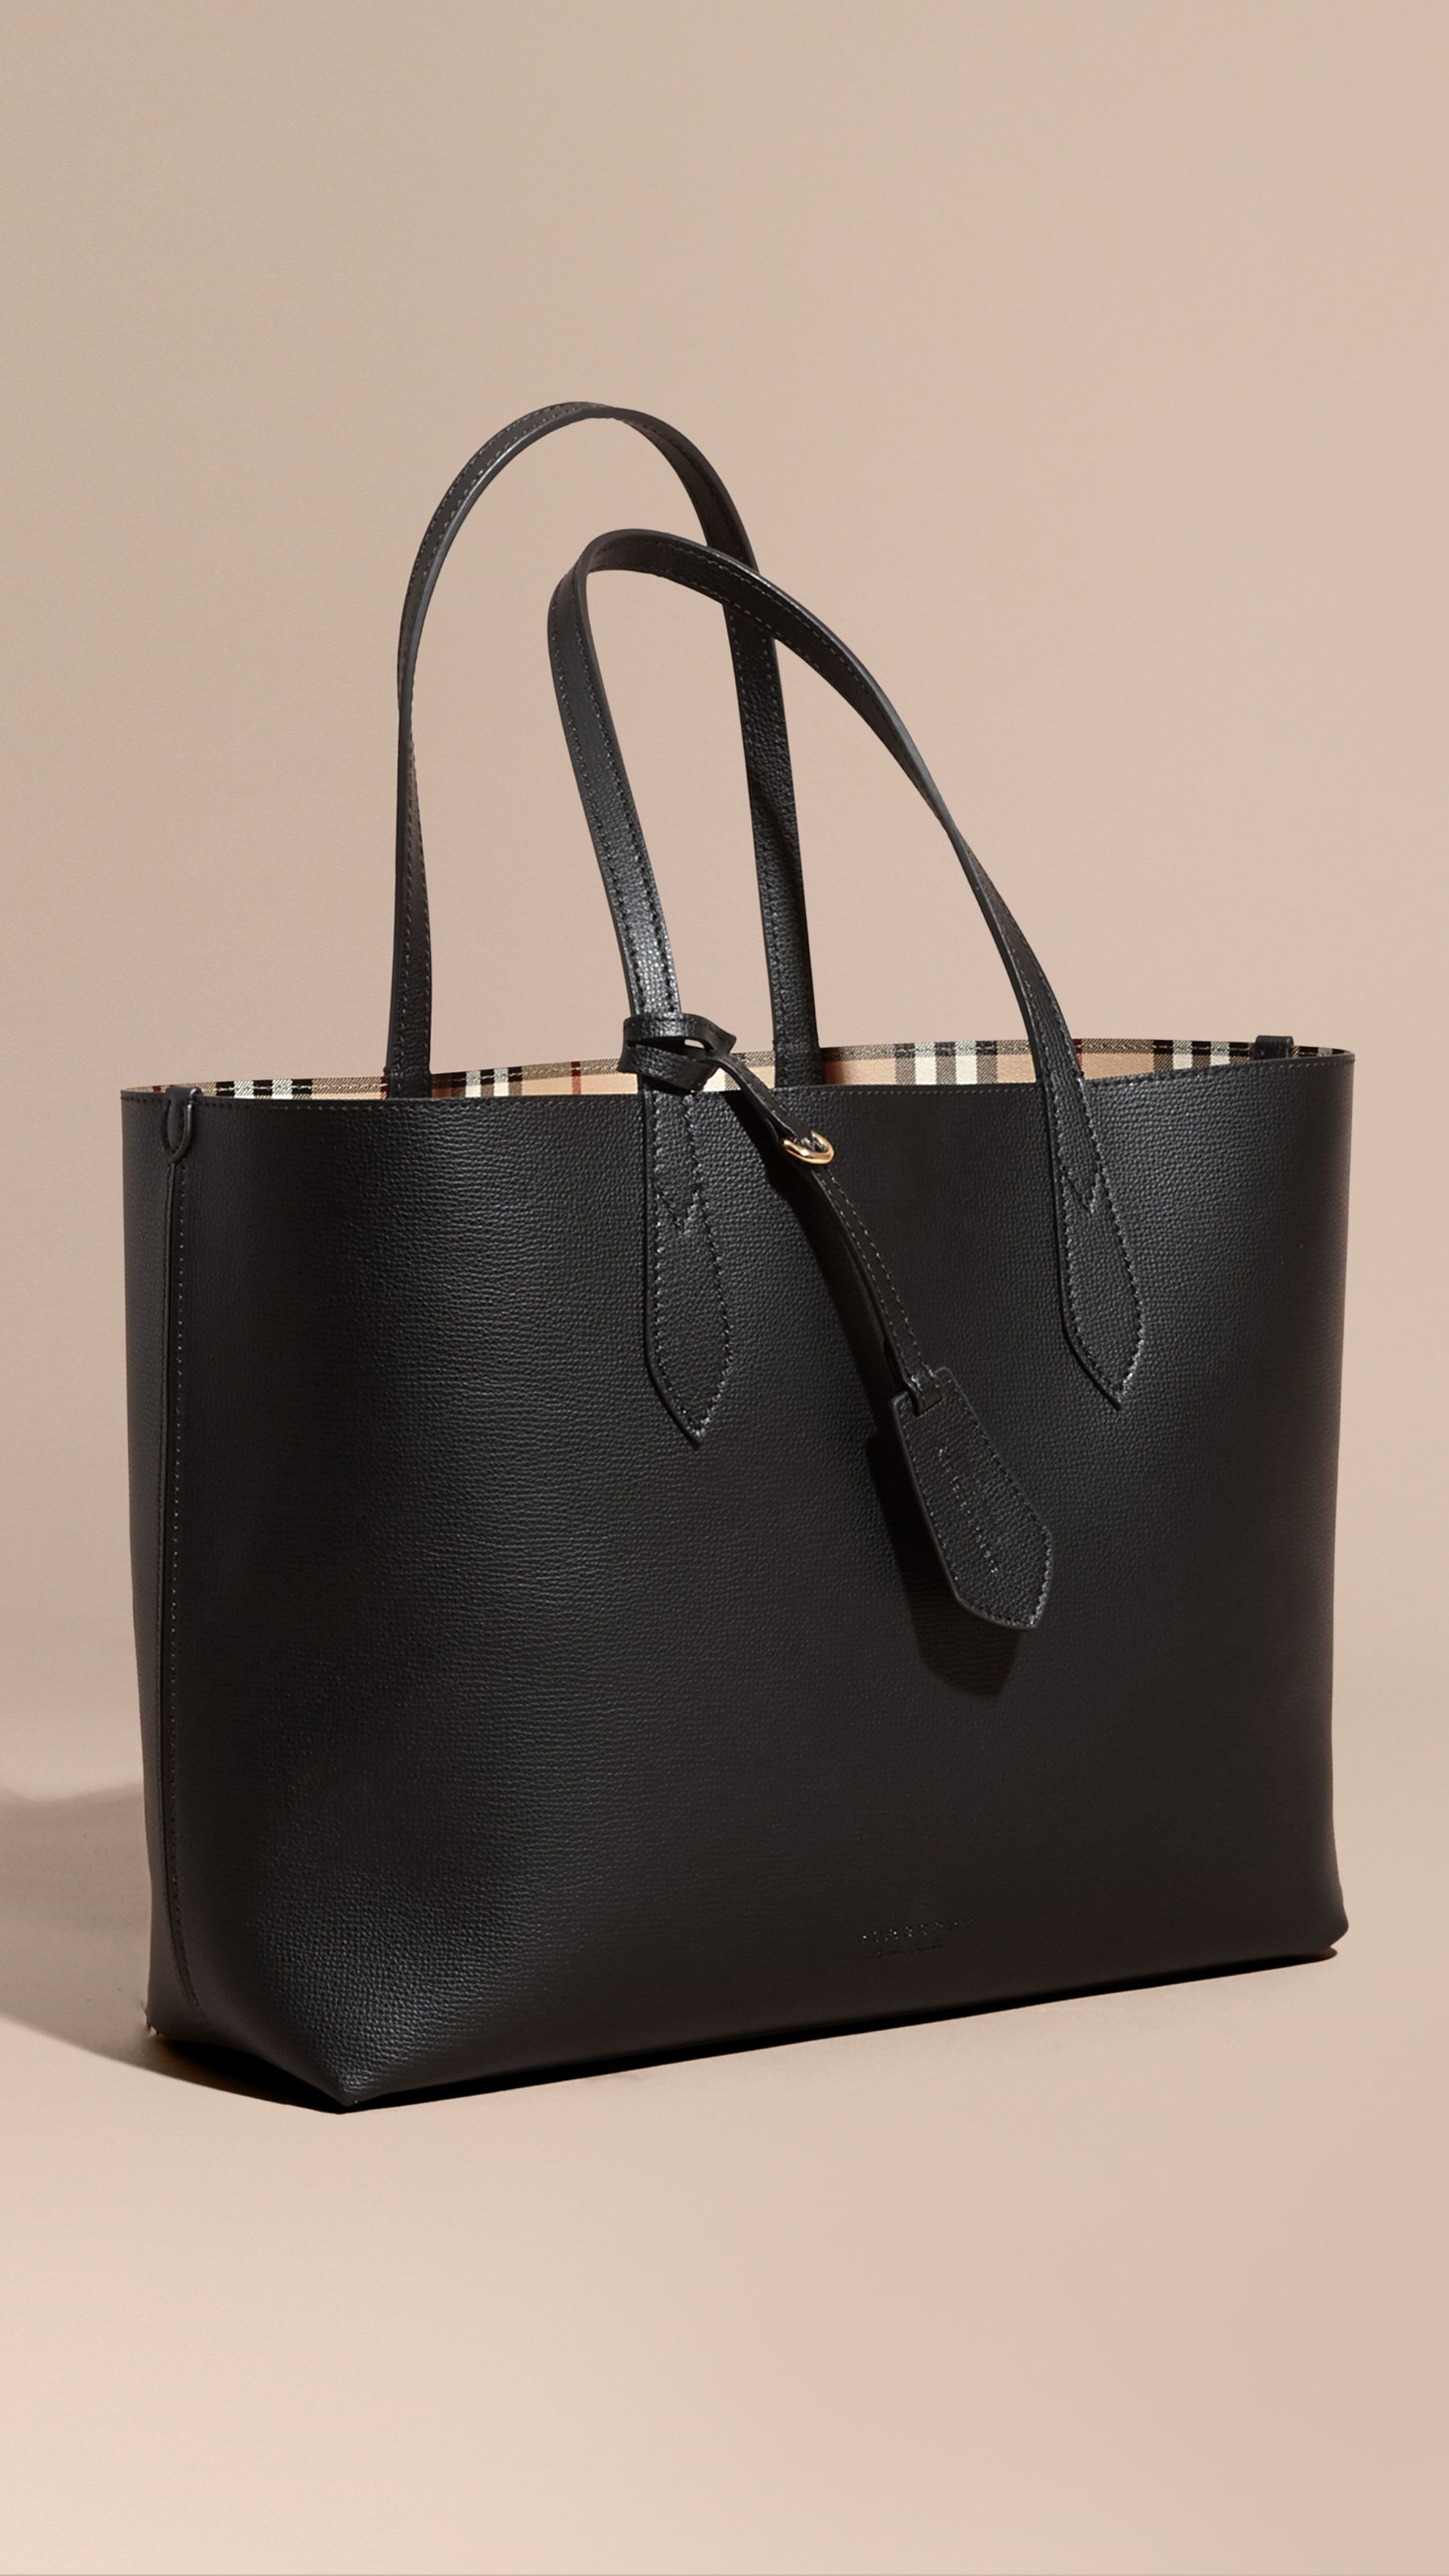 The Medium Reversible Tote in Haymarket Check and Leather Black  bdb185a0542da